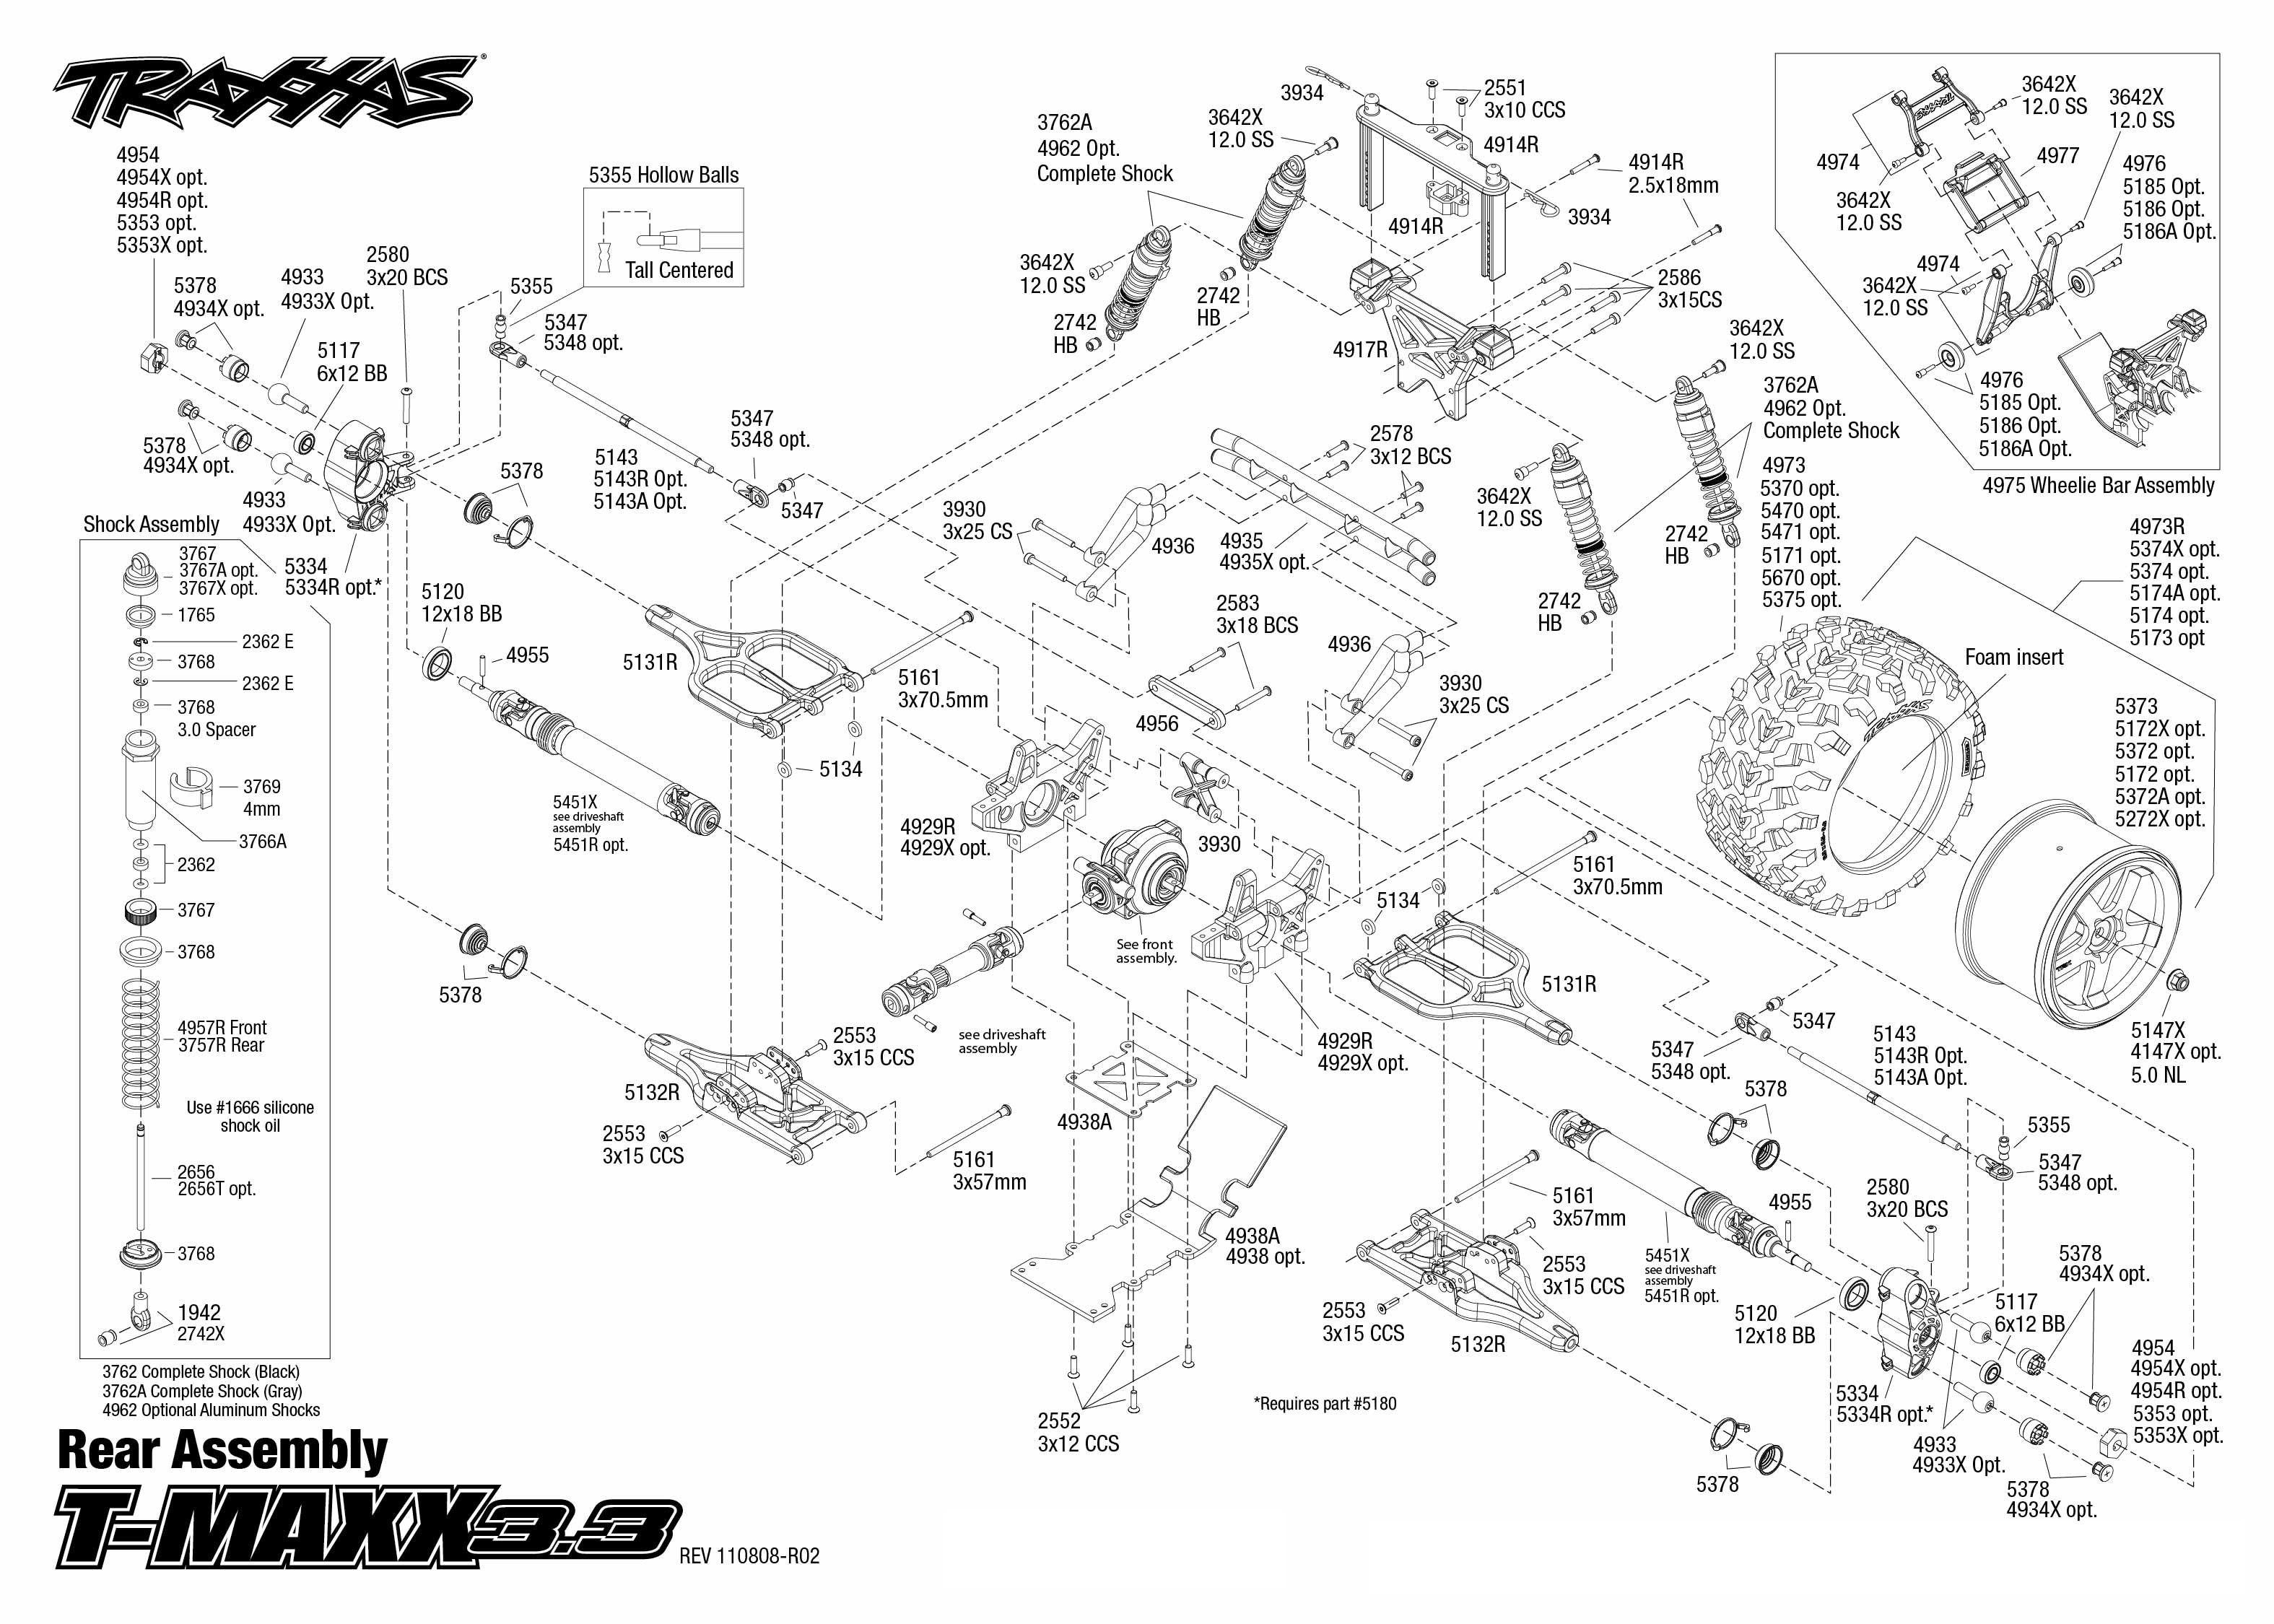 traxxas t maxx 33 owners manual how to and user guide instructions u2022 rh taxibermuda co Traxxas T-Maxx 2 5 Performance Parts T-Maxx 2.5 Exploded-View